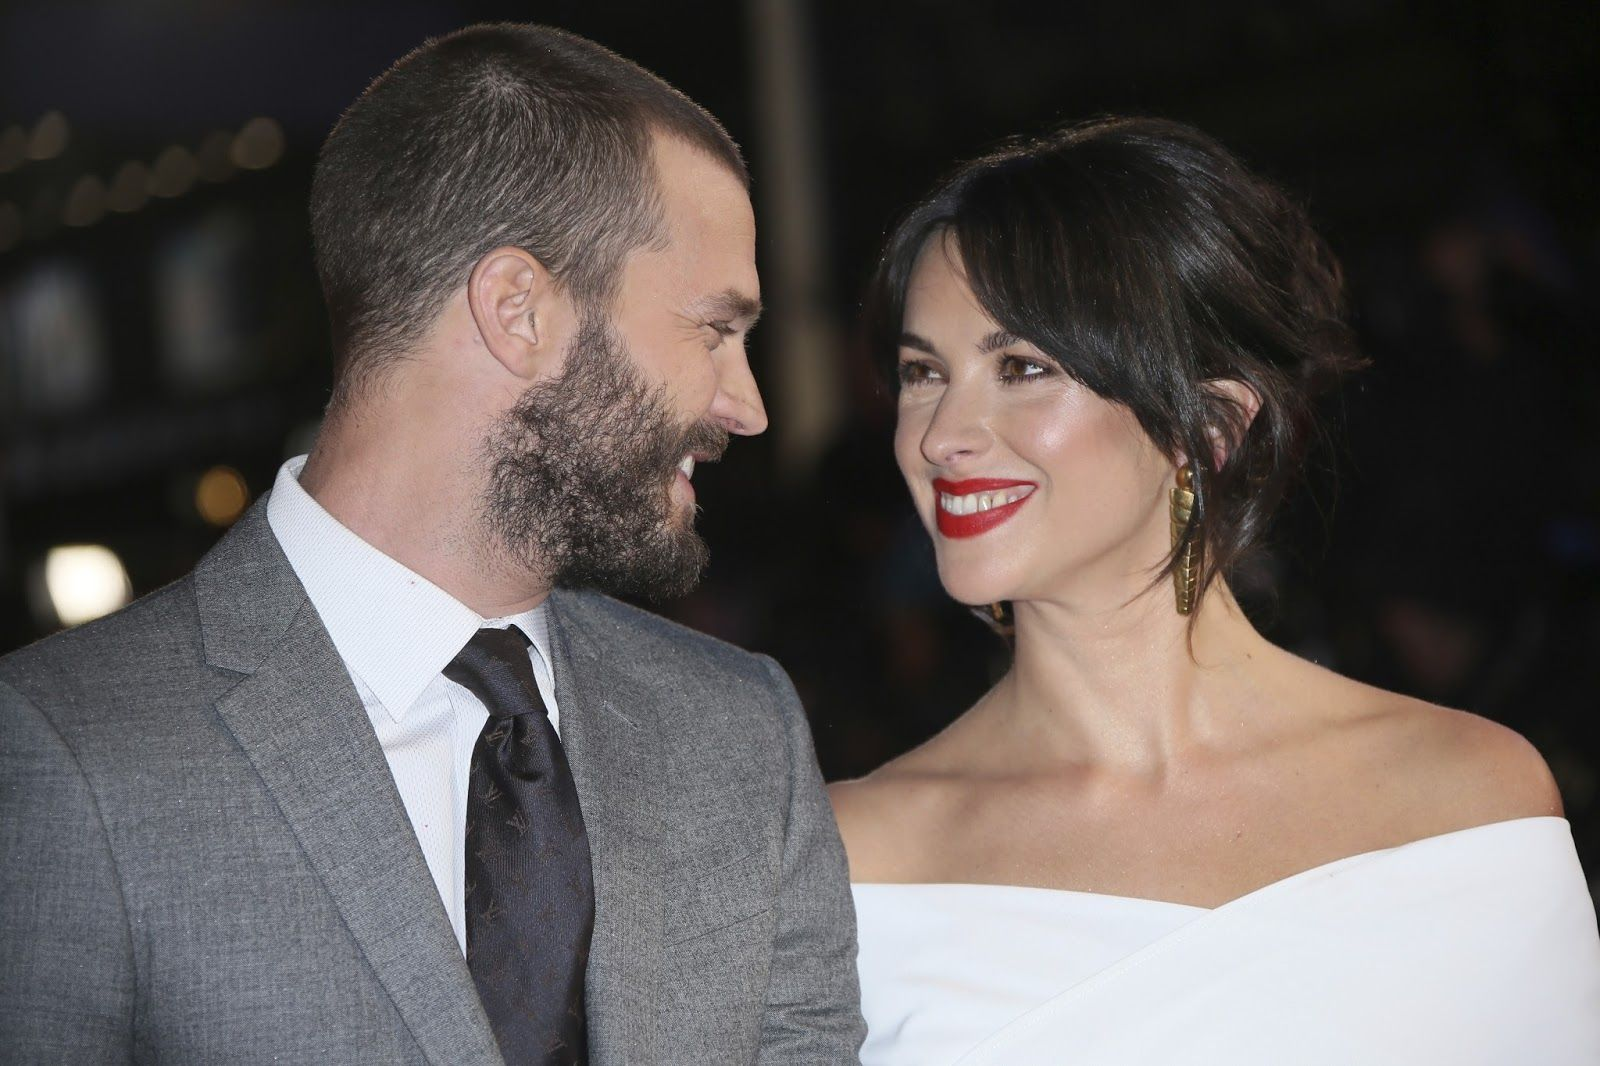 Jamie & Amelia at the Fifty Shades Darker London premiere... ::dreamy sigh::